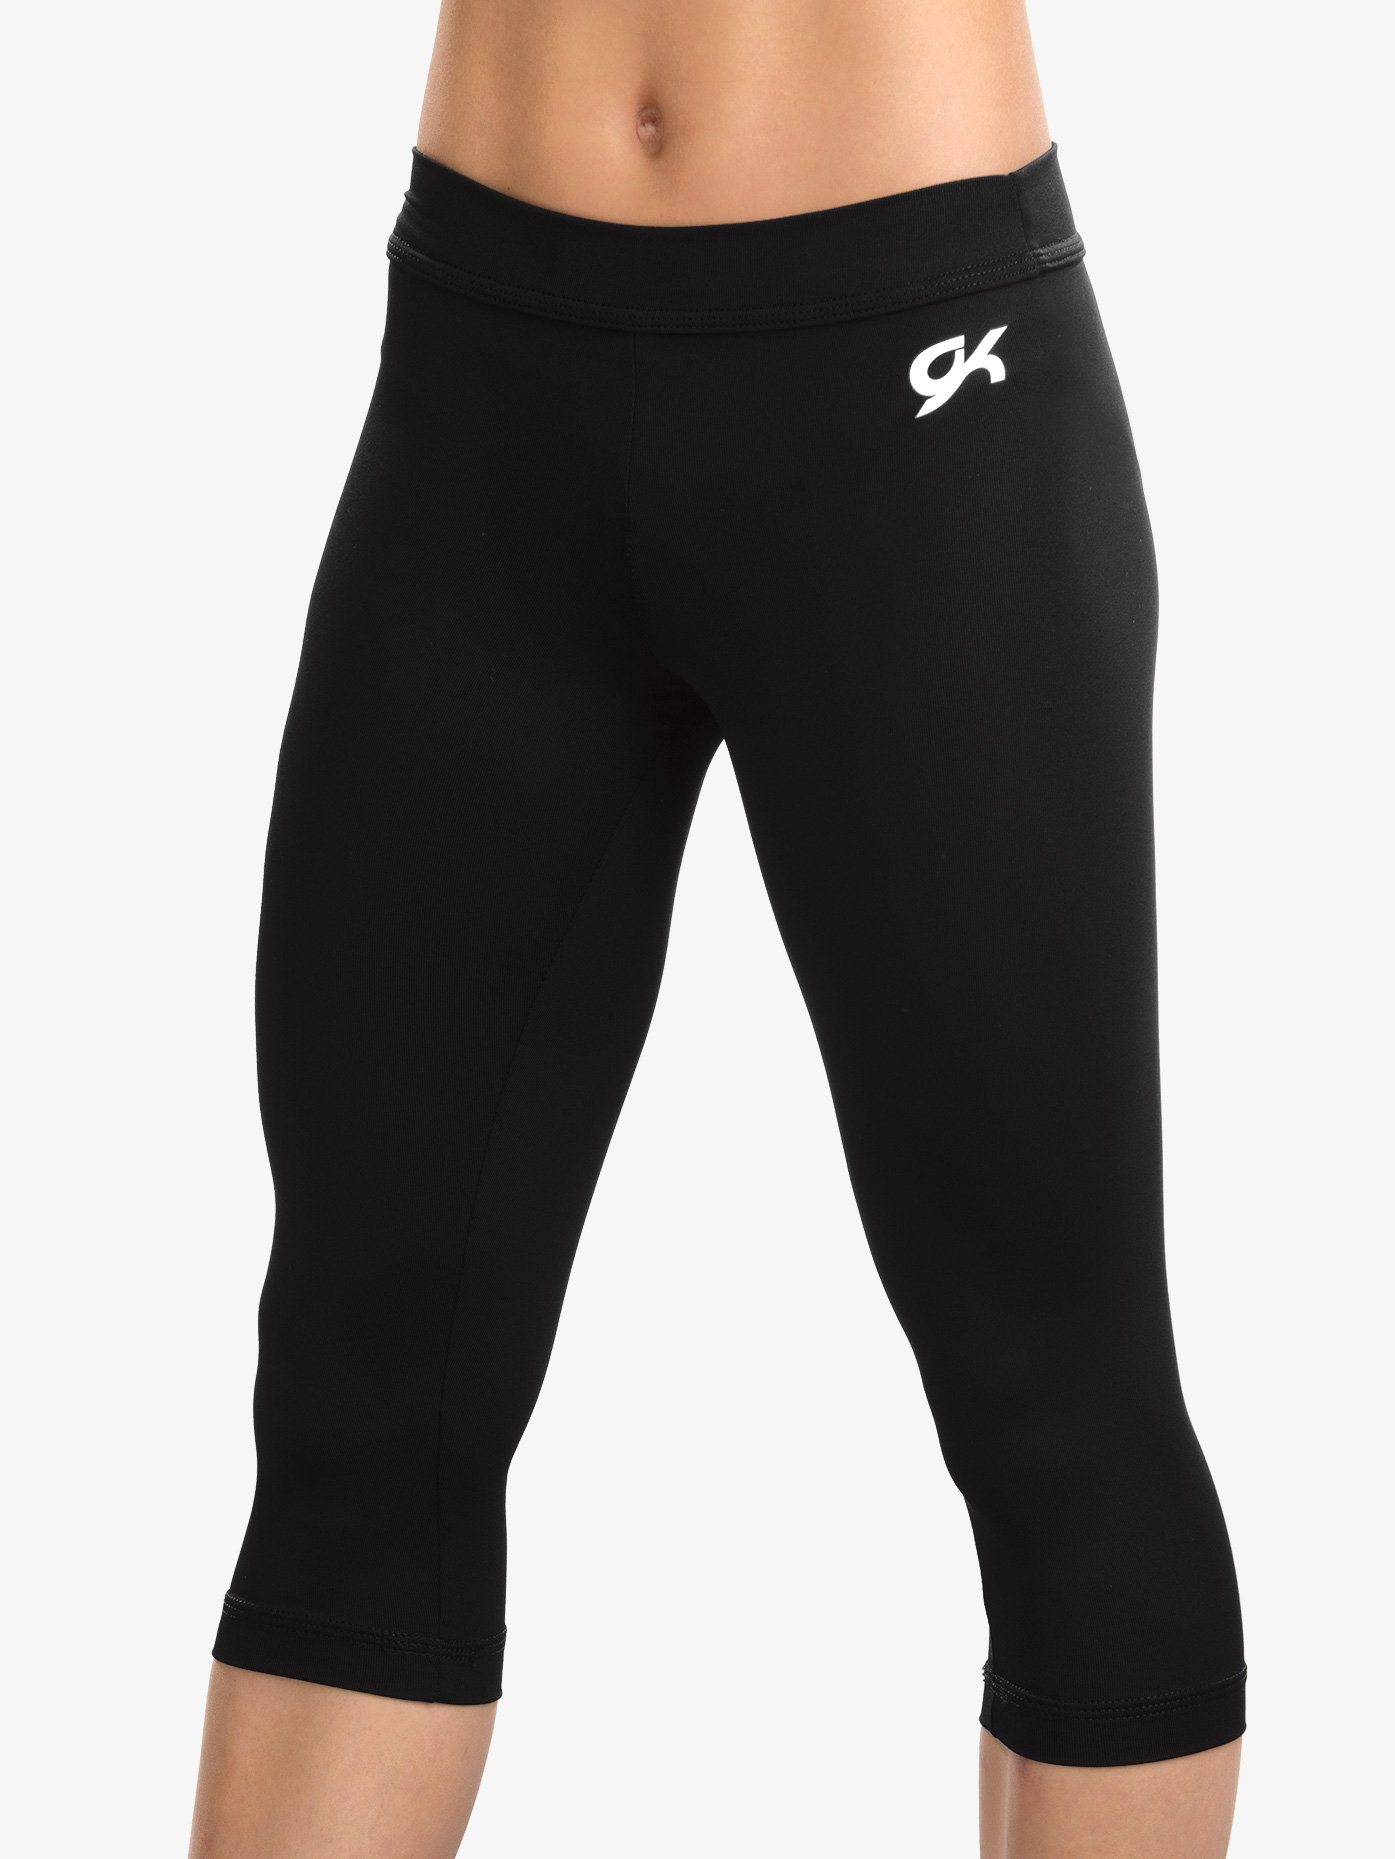 GK Elite Adult DryTech Capri Leggings E2259